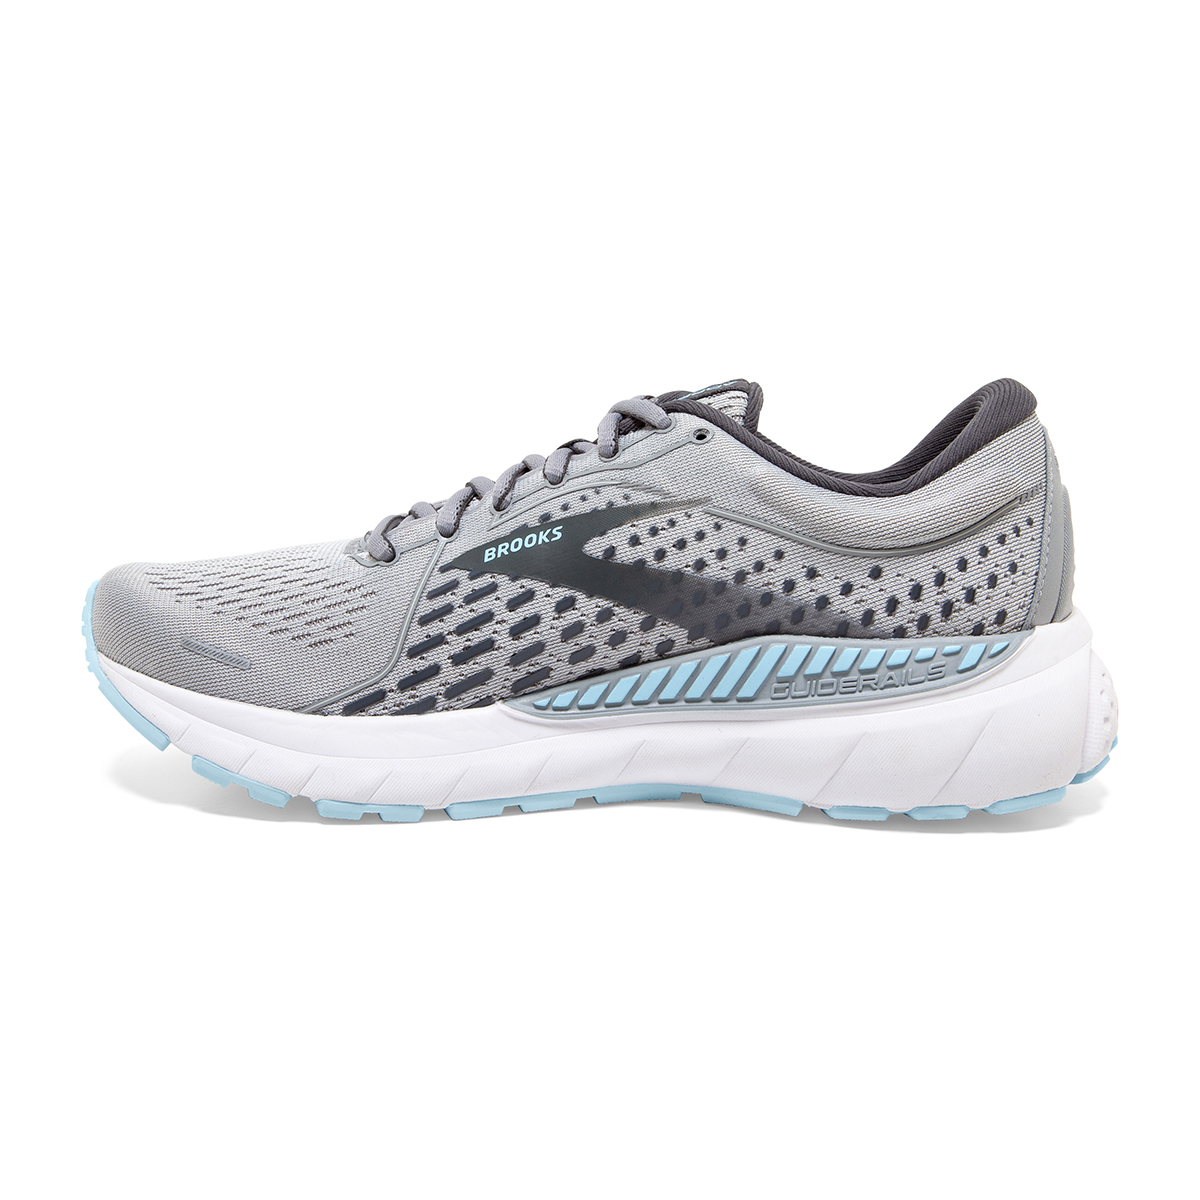 Women's Brooks Adrenaline GTS 21 Running Shoe - Color: Oyster/Alloy/Light Blue - Size: 5 - Width: Wide, Oyster/Alloy/Light Blue, large, image 3